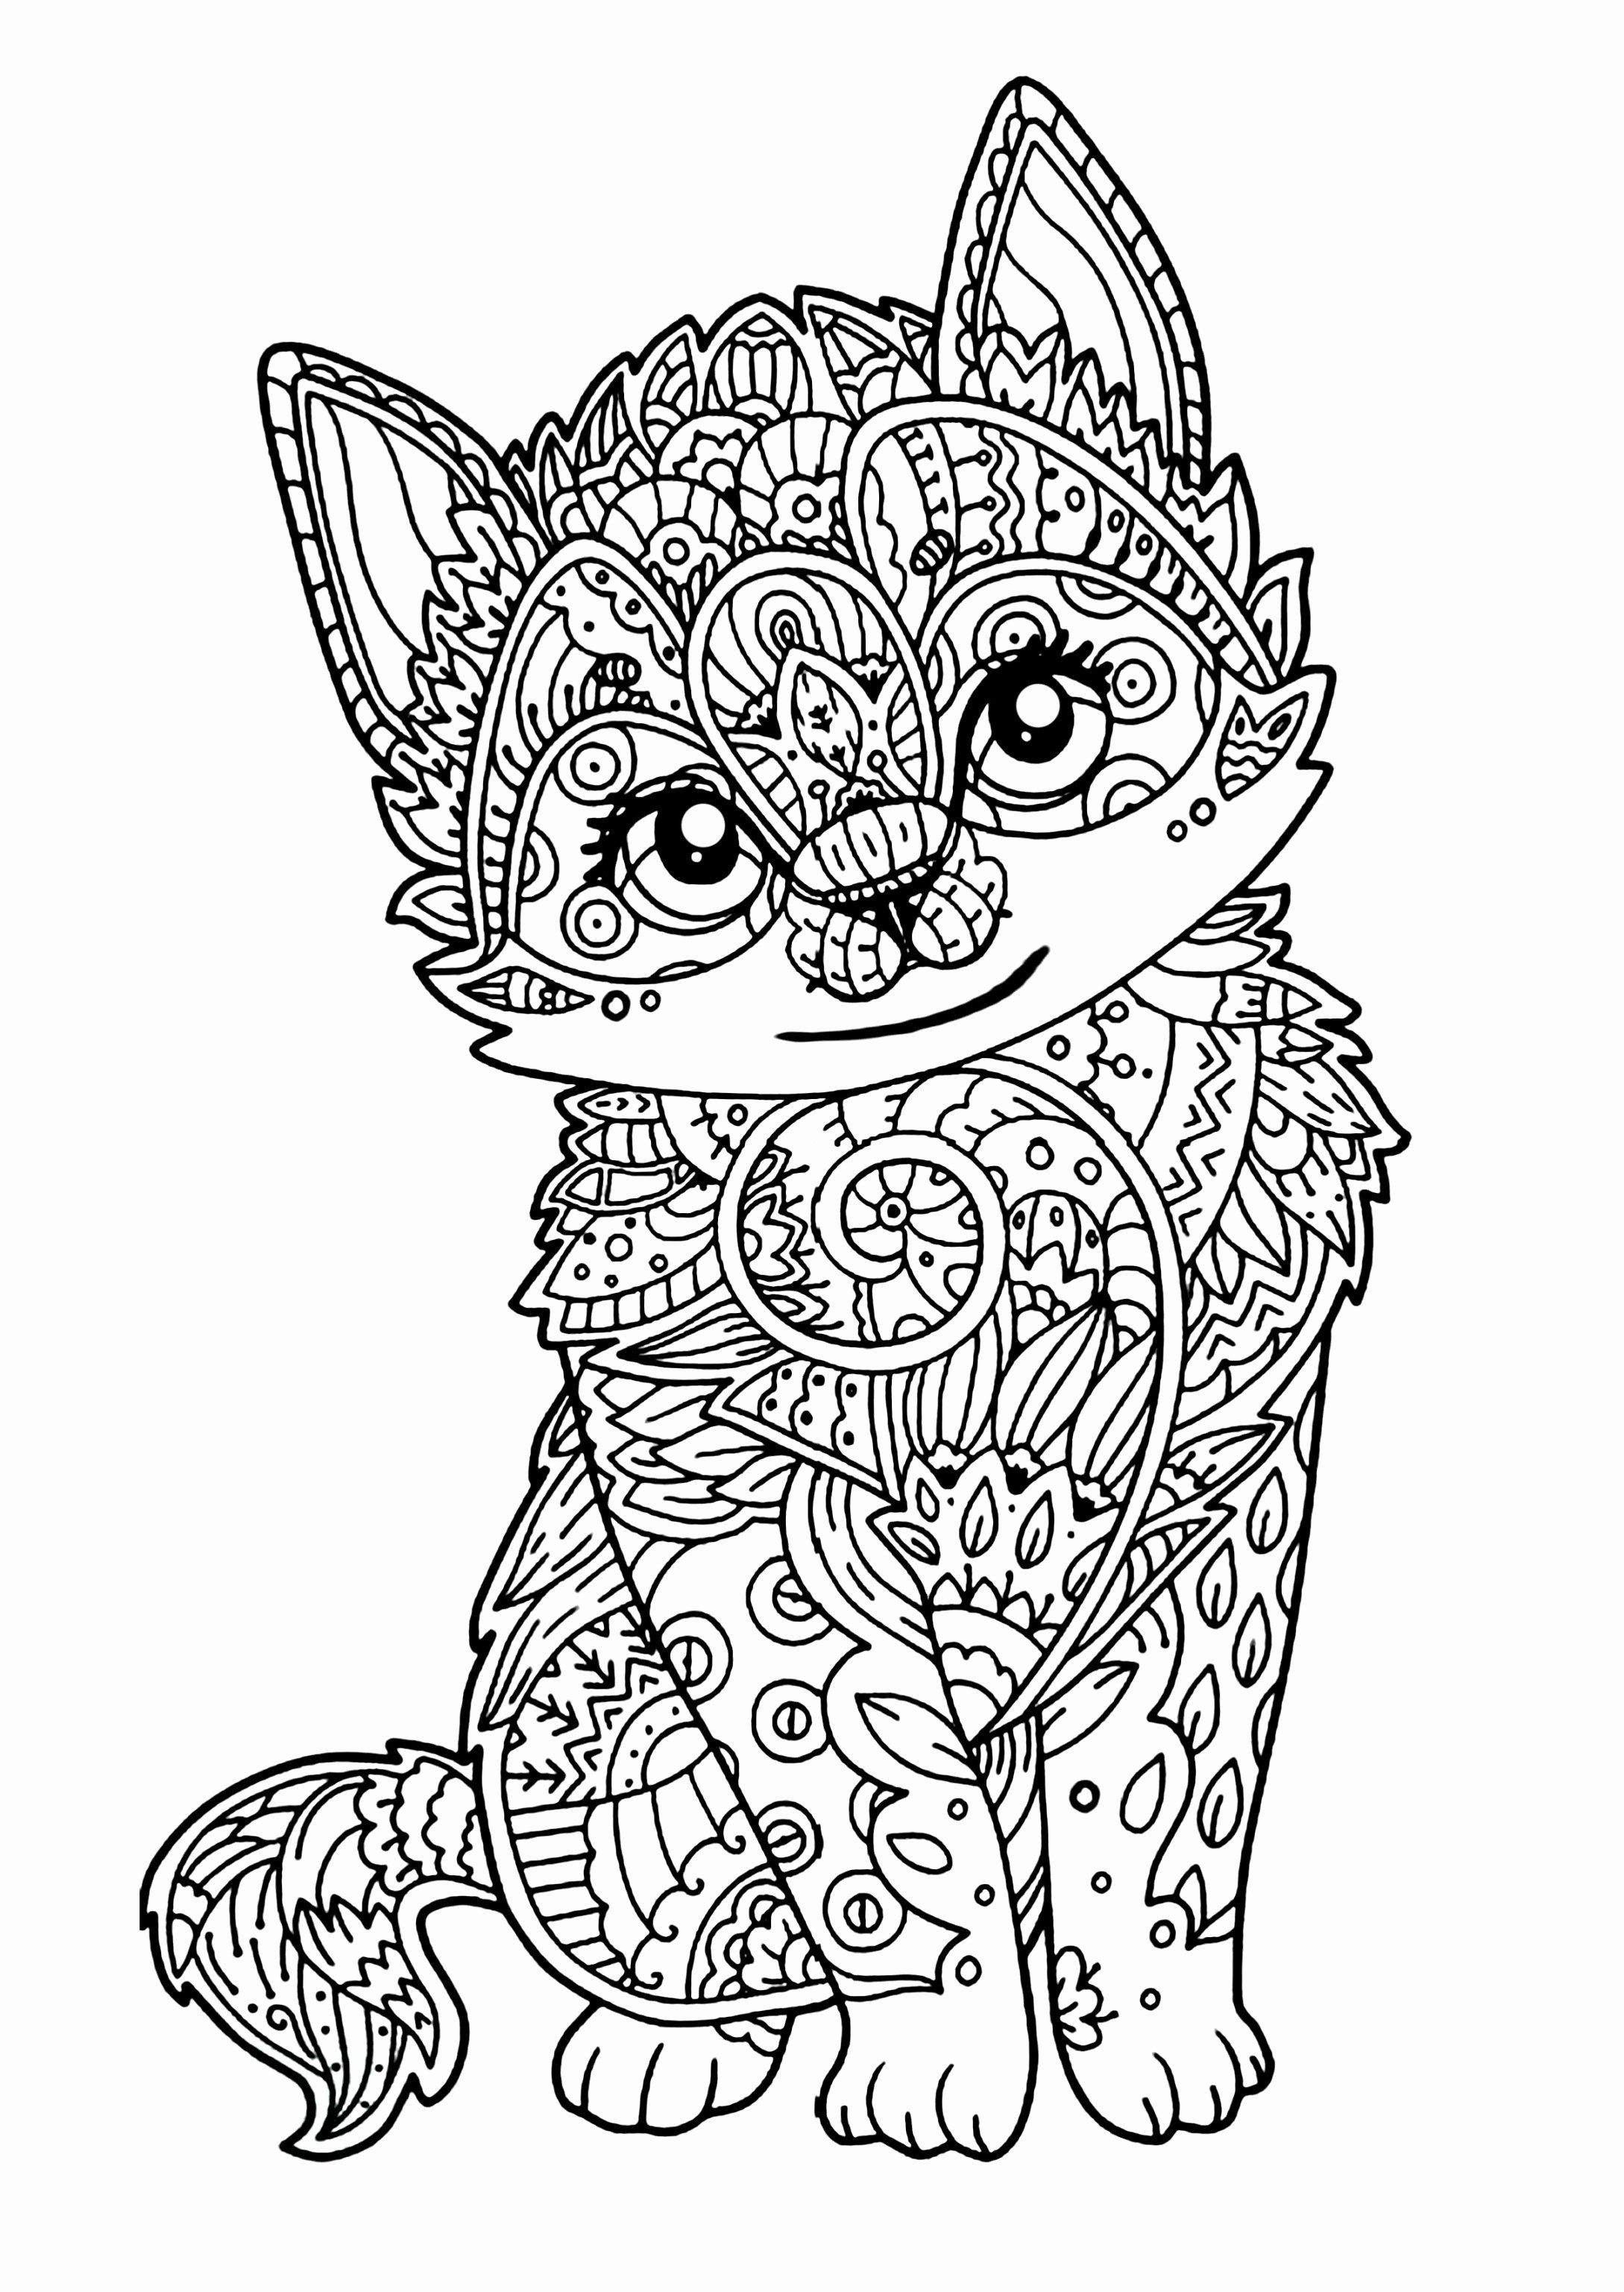 Hard Coloring Sheets For Adults Awesome 51 Most Wonderful Cute Kawaii Animal Coloring Pages Kittens Coloring Cat Coloring Book Cat Coloring Page